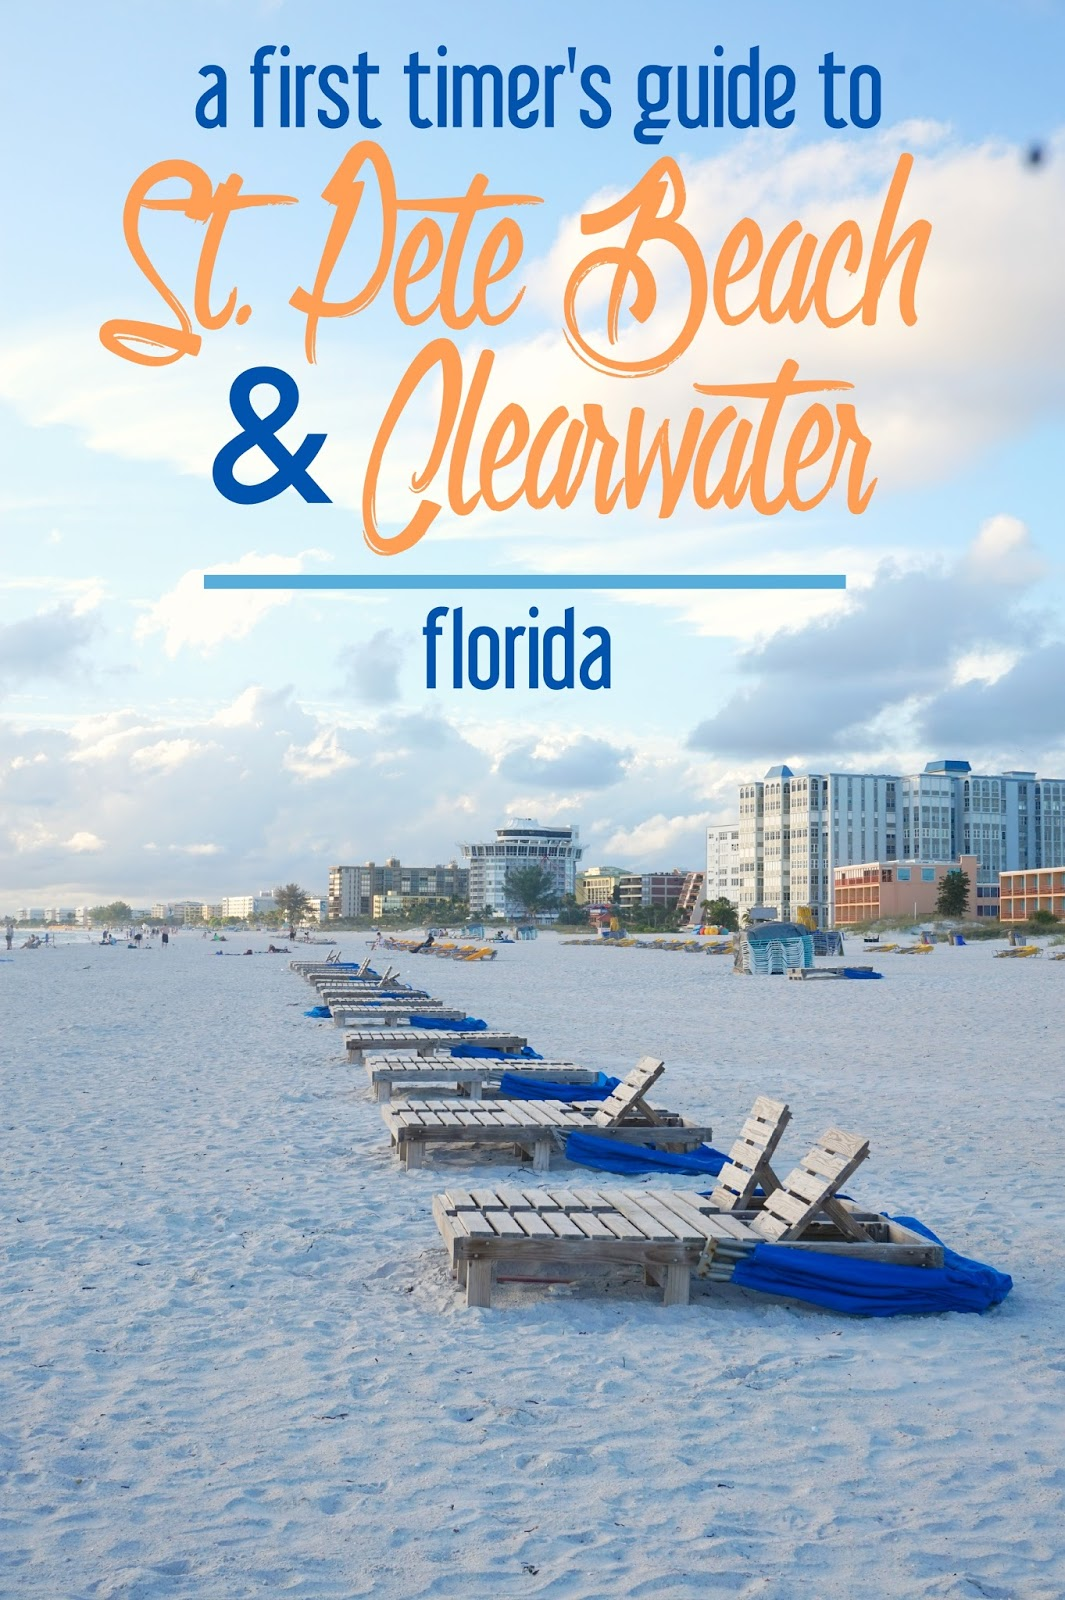 A First-Timer's Guide to St. Pete Beach, Florida: Where to Visit, Eat, Shop, and Sleep